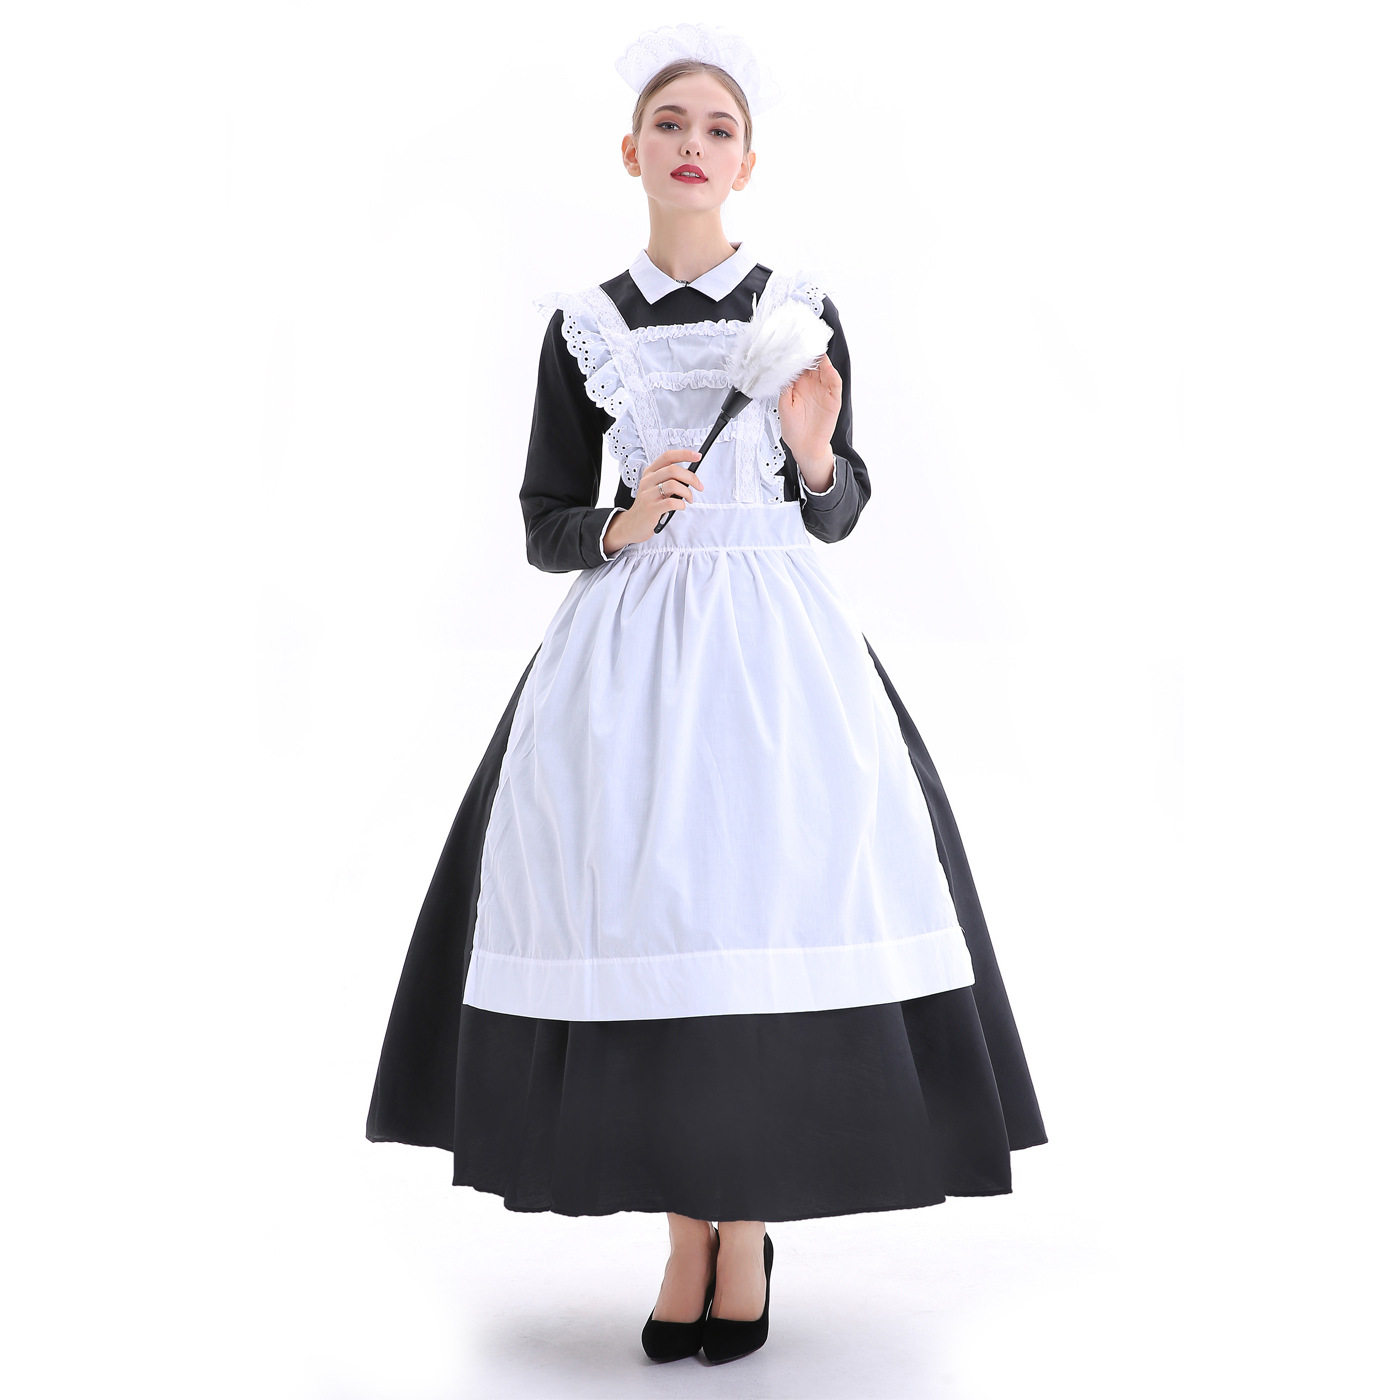 Women Maid Cosplay Costume France Manor Maid Dress Outfit Role Play Game clothing halloween party dresses